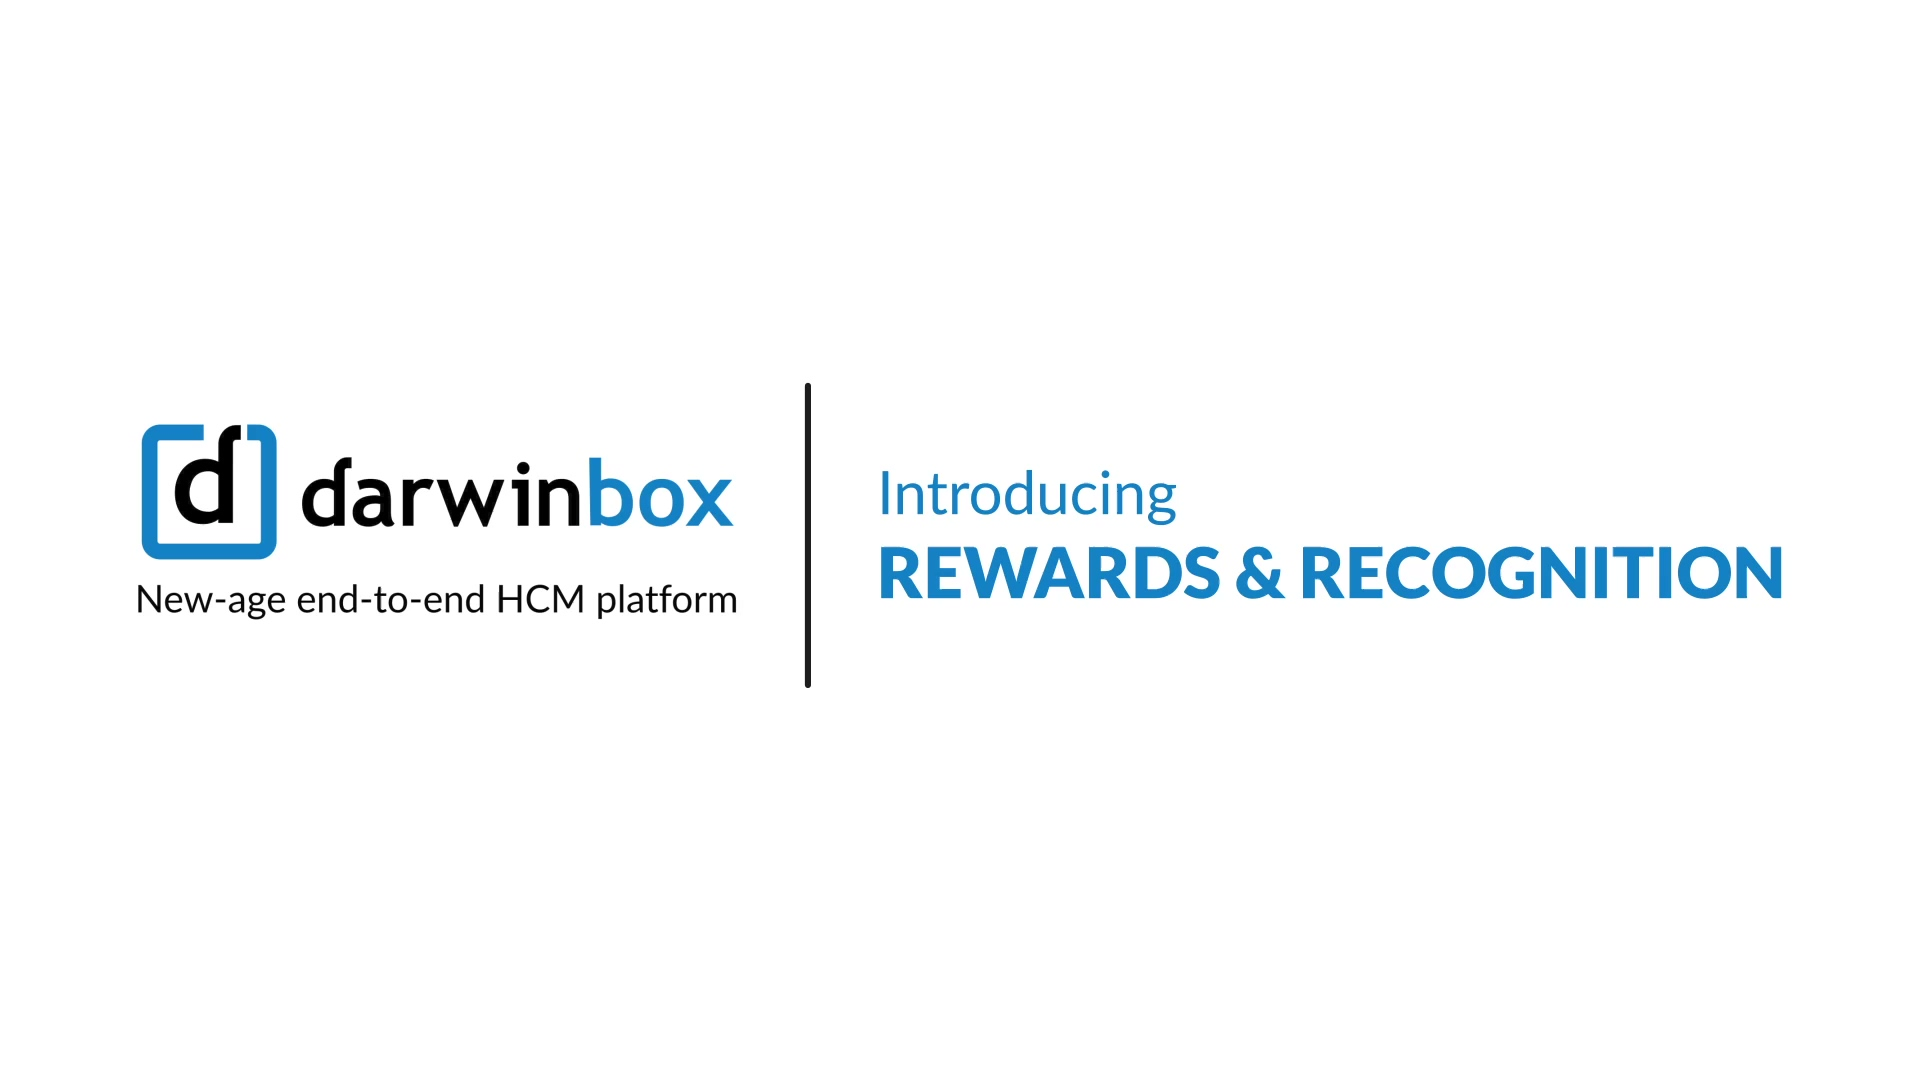 Rewards and Recognition on Darwinbox